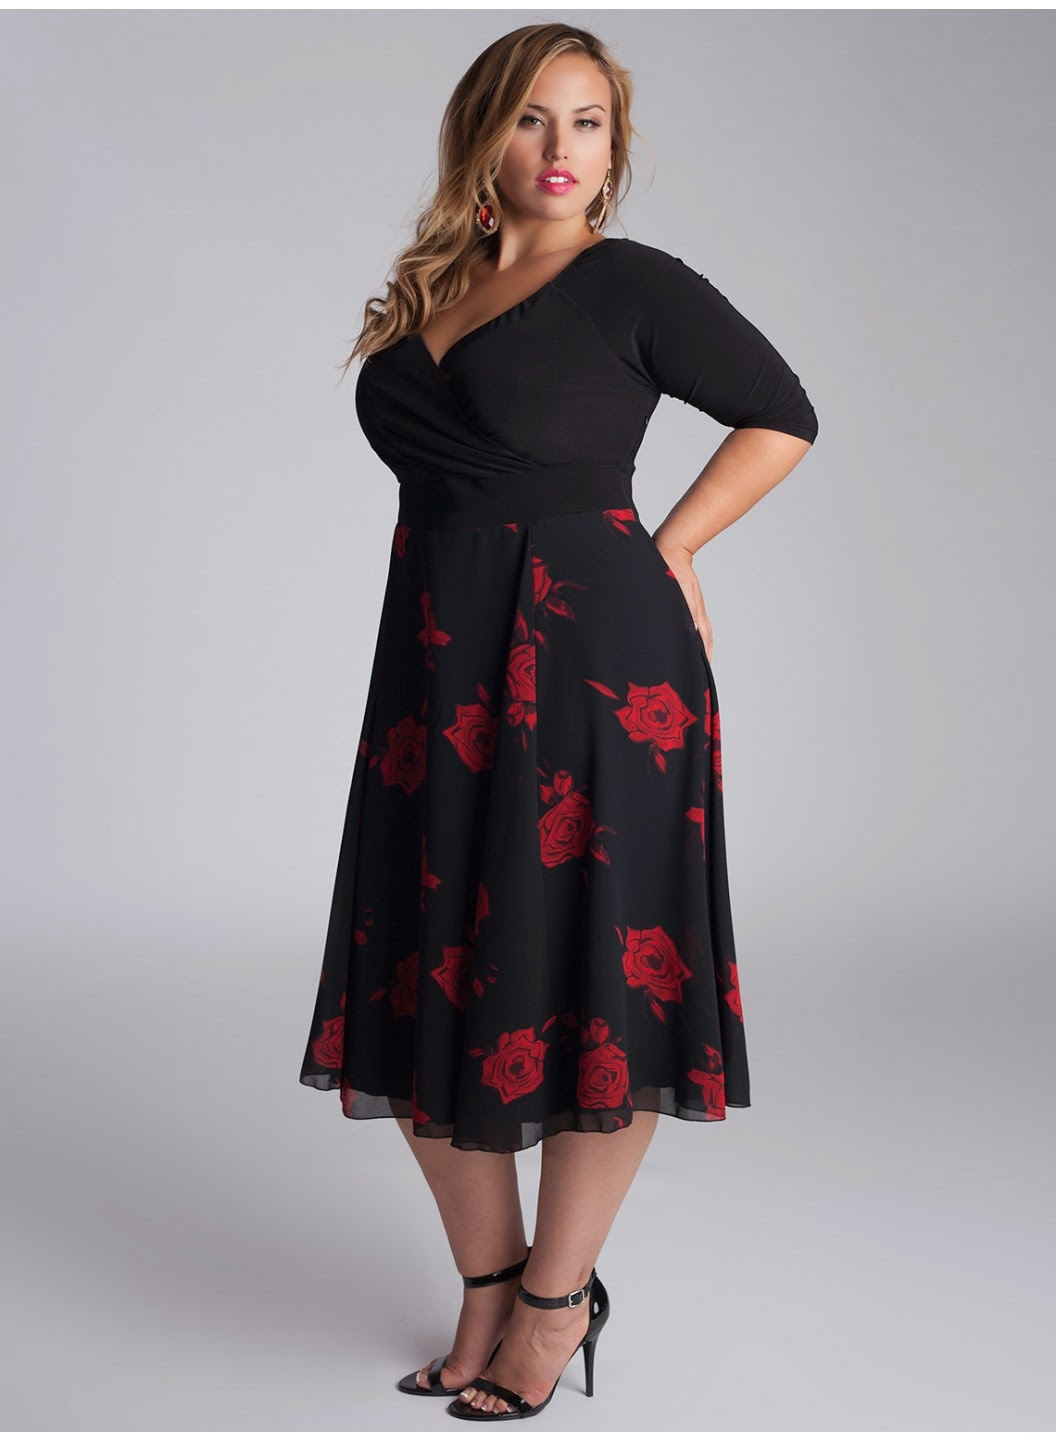 We are an Australian owned and operated Plus Size Clothing online boutique Our Range includes curvy racewear plus size evening and cocktail dresses plus size tops